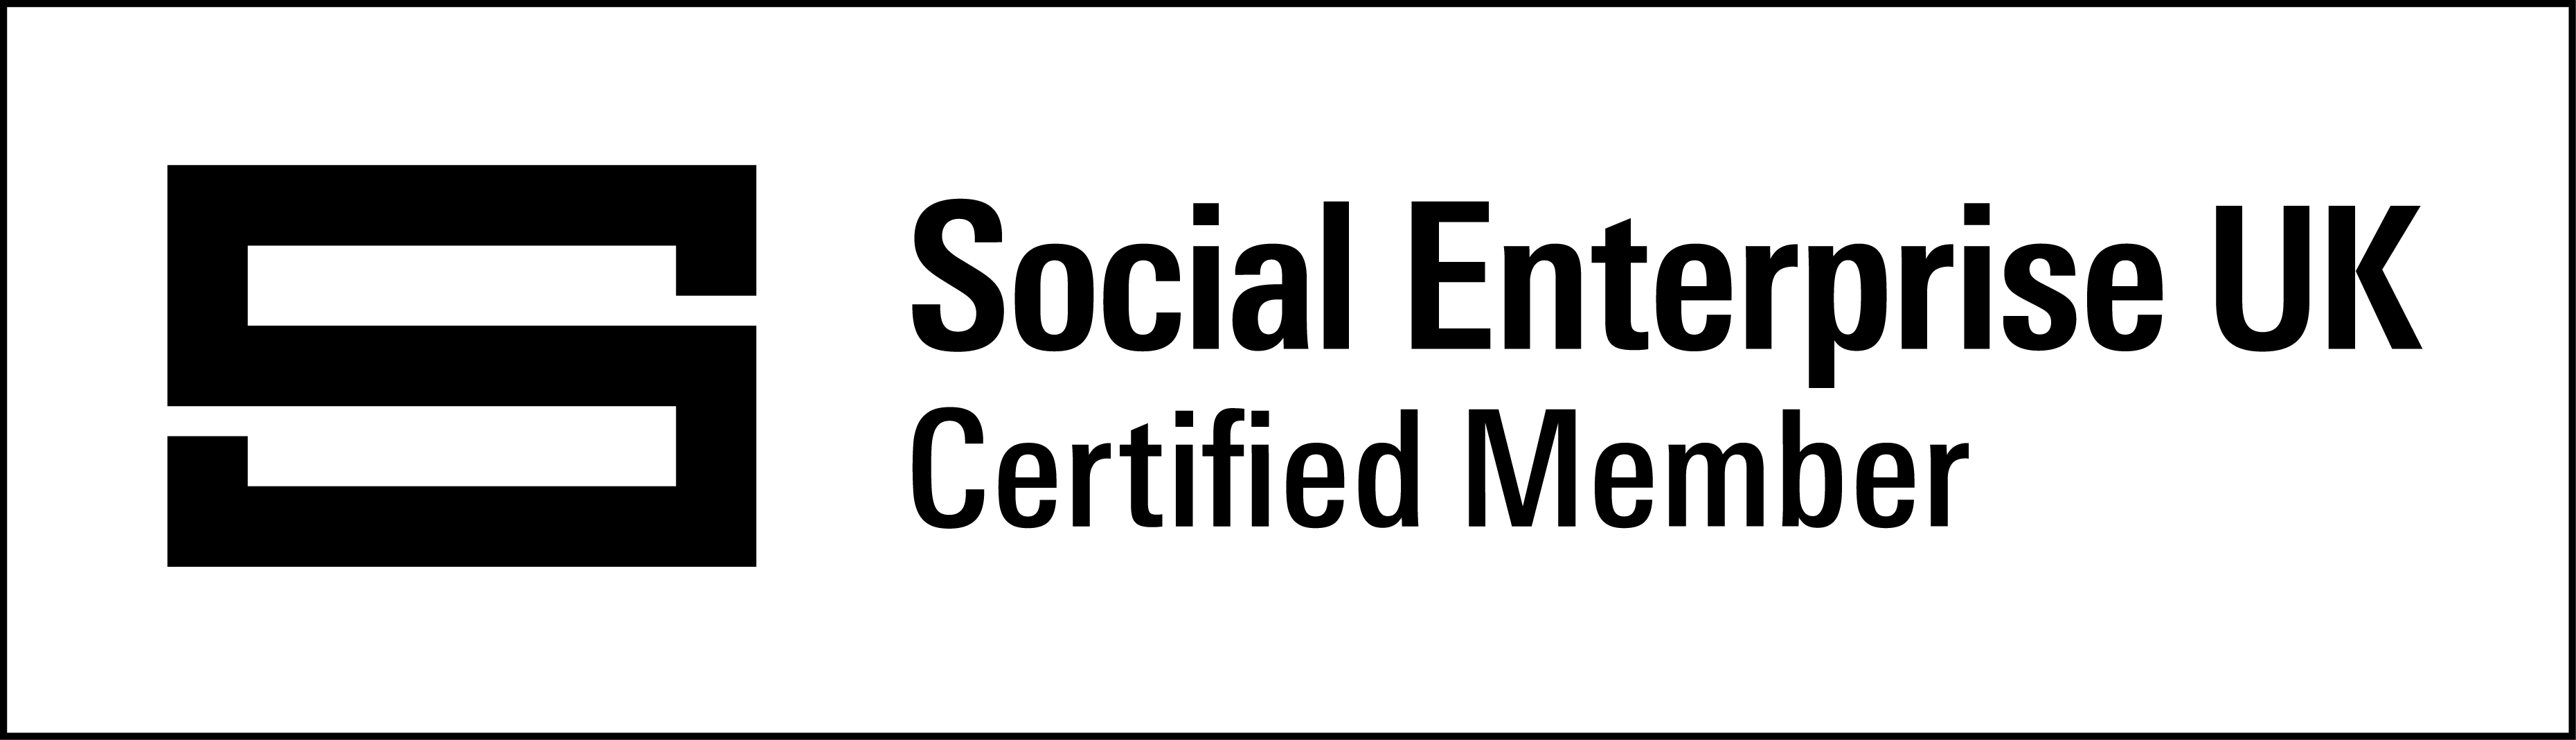 seuk-social-enterprise-uk-certified-member-logo-marks-out-of-tenancy